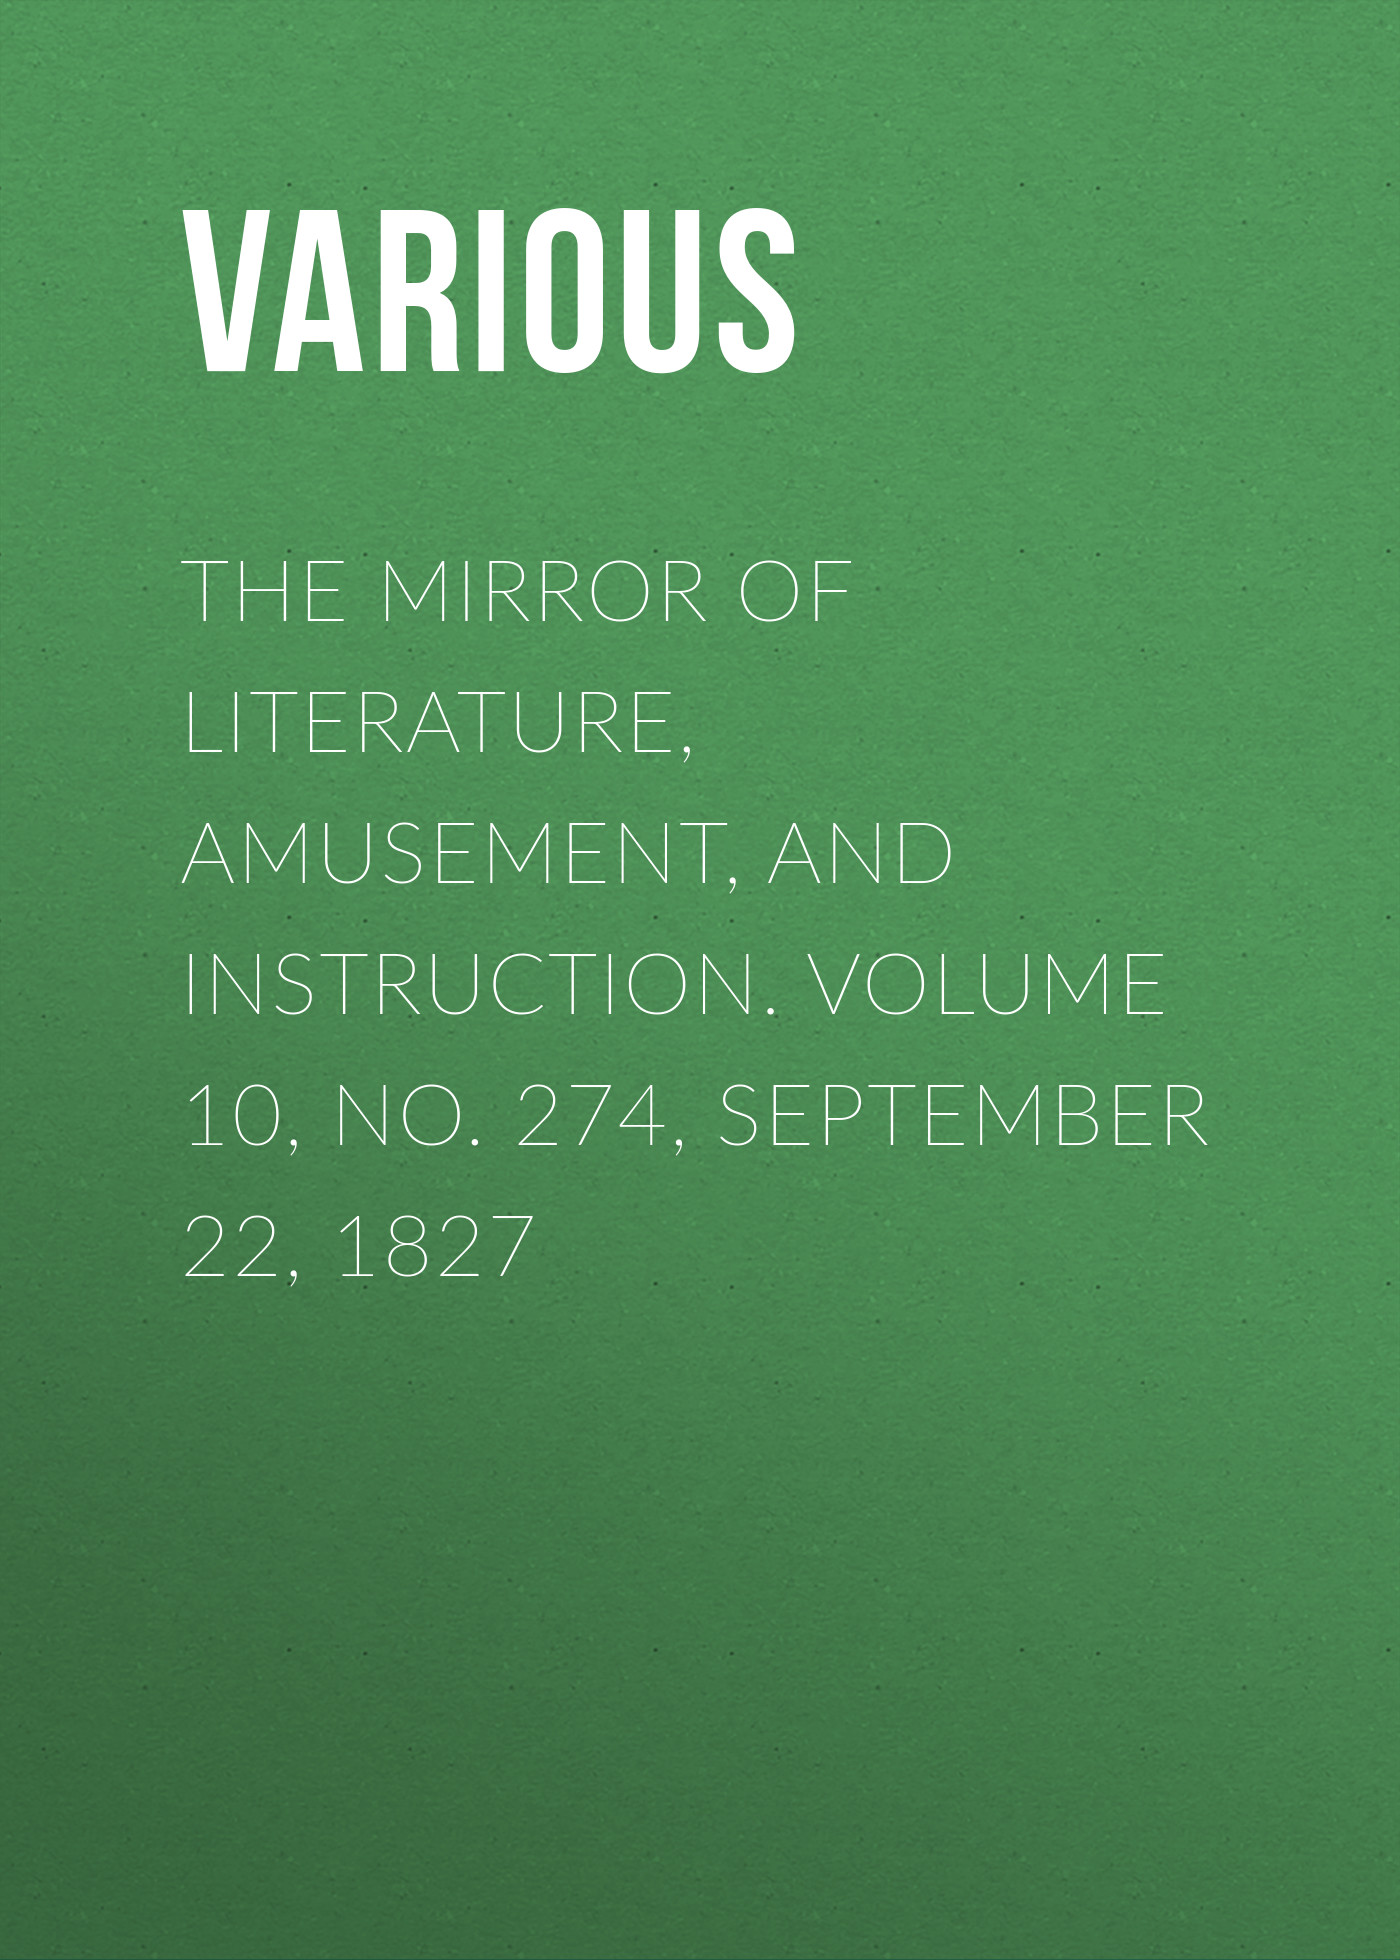 Various The Mirror of Literature, Amusement, and Instruction. Volume 10, No. 274, September 22, 1827 various the mirror of literature amusement and instruction volume 14 no 391 september 26 1829